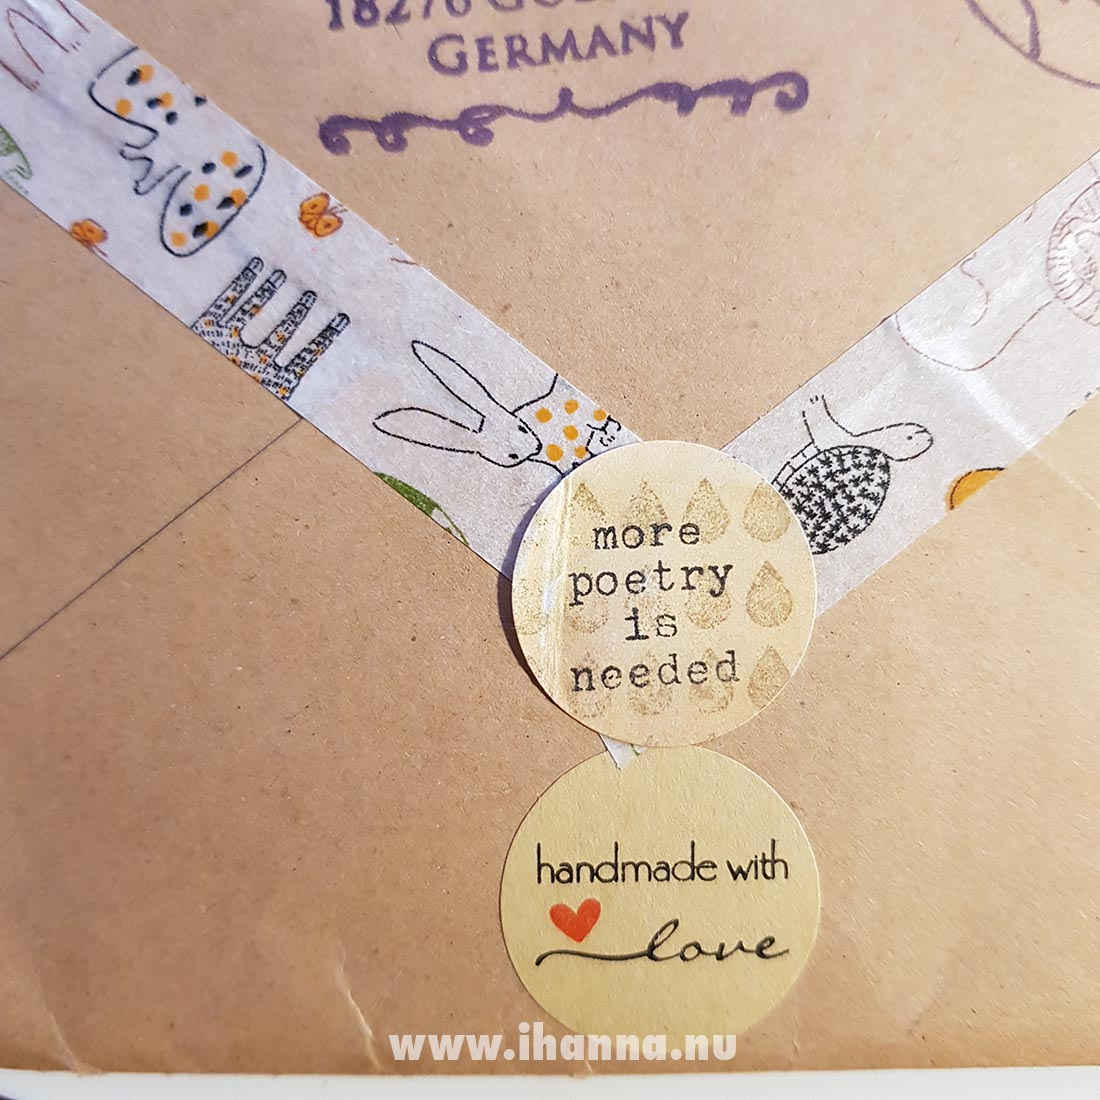 More poetry is needed sticker on Happy mail Envelope (back) from Franca Maria to iHanna #snailmail